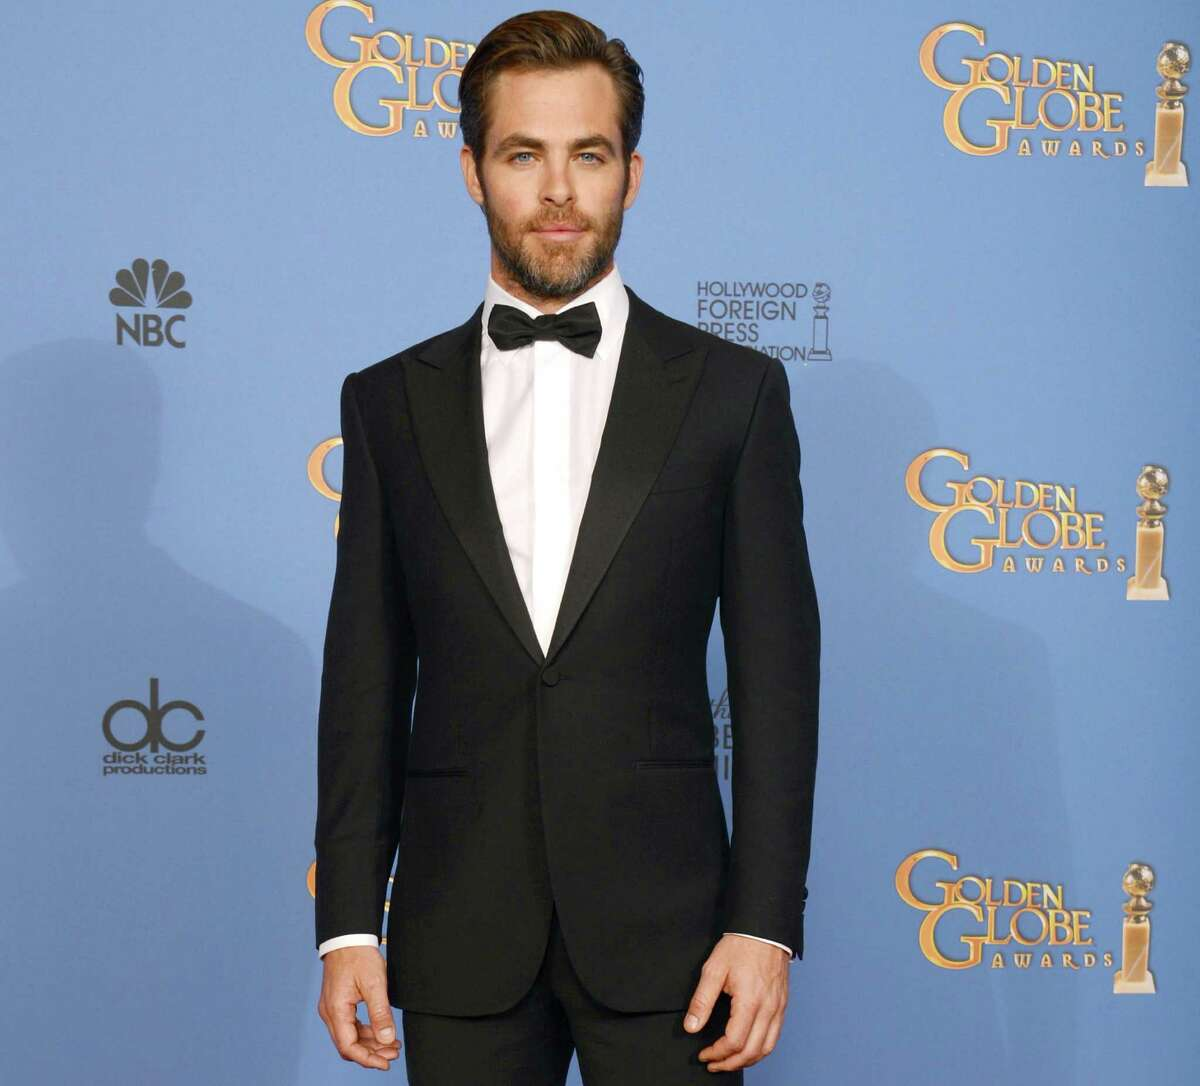 """FILE - In this Sunday, Jan. 12, 2014 file photo, actor Chris Pine poses in the press room at the 71st annual Golden Globe Awards at the Beverly Hilton Hotel, in Beverly Hills, Calif. Pine says the US should have done more in the run-up to the Olympics to protest Russia?'s anti-gay legislation, which he calls ?""""clearly awful, archaic, hostile nonsense.?"""" ?""""I think we should do more than just send gay Olympians there,?"""" he said in an interview while promoting his film ?""""Jack Ryan: Shadow Recruit,"""" which opens Friday, Jan. 17, 2014. (Photo by Jordan Strauss/Invision/AP) ORG XMIT: CAET732"""